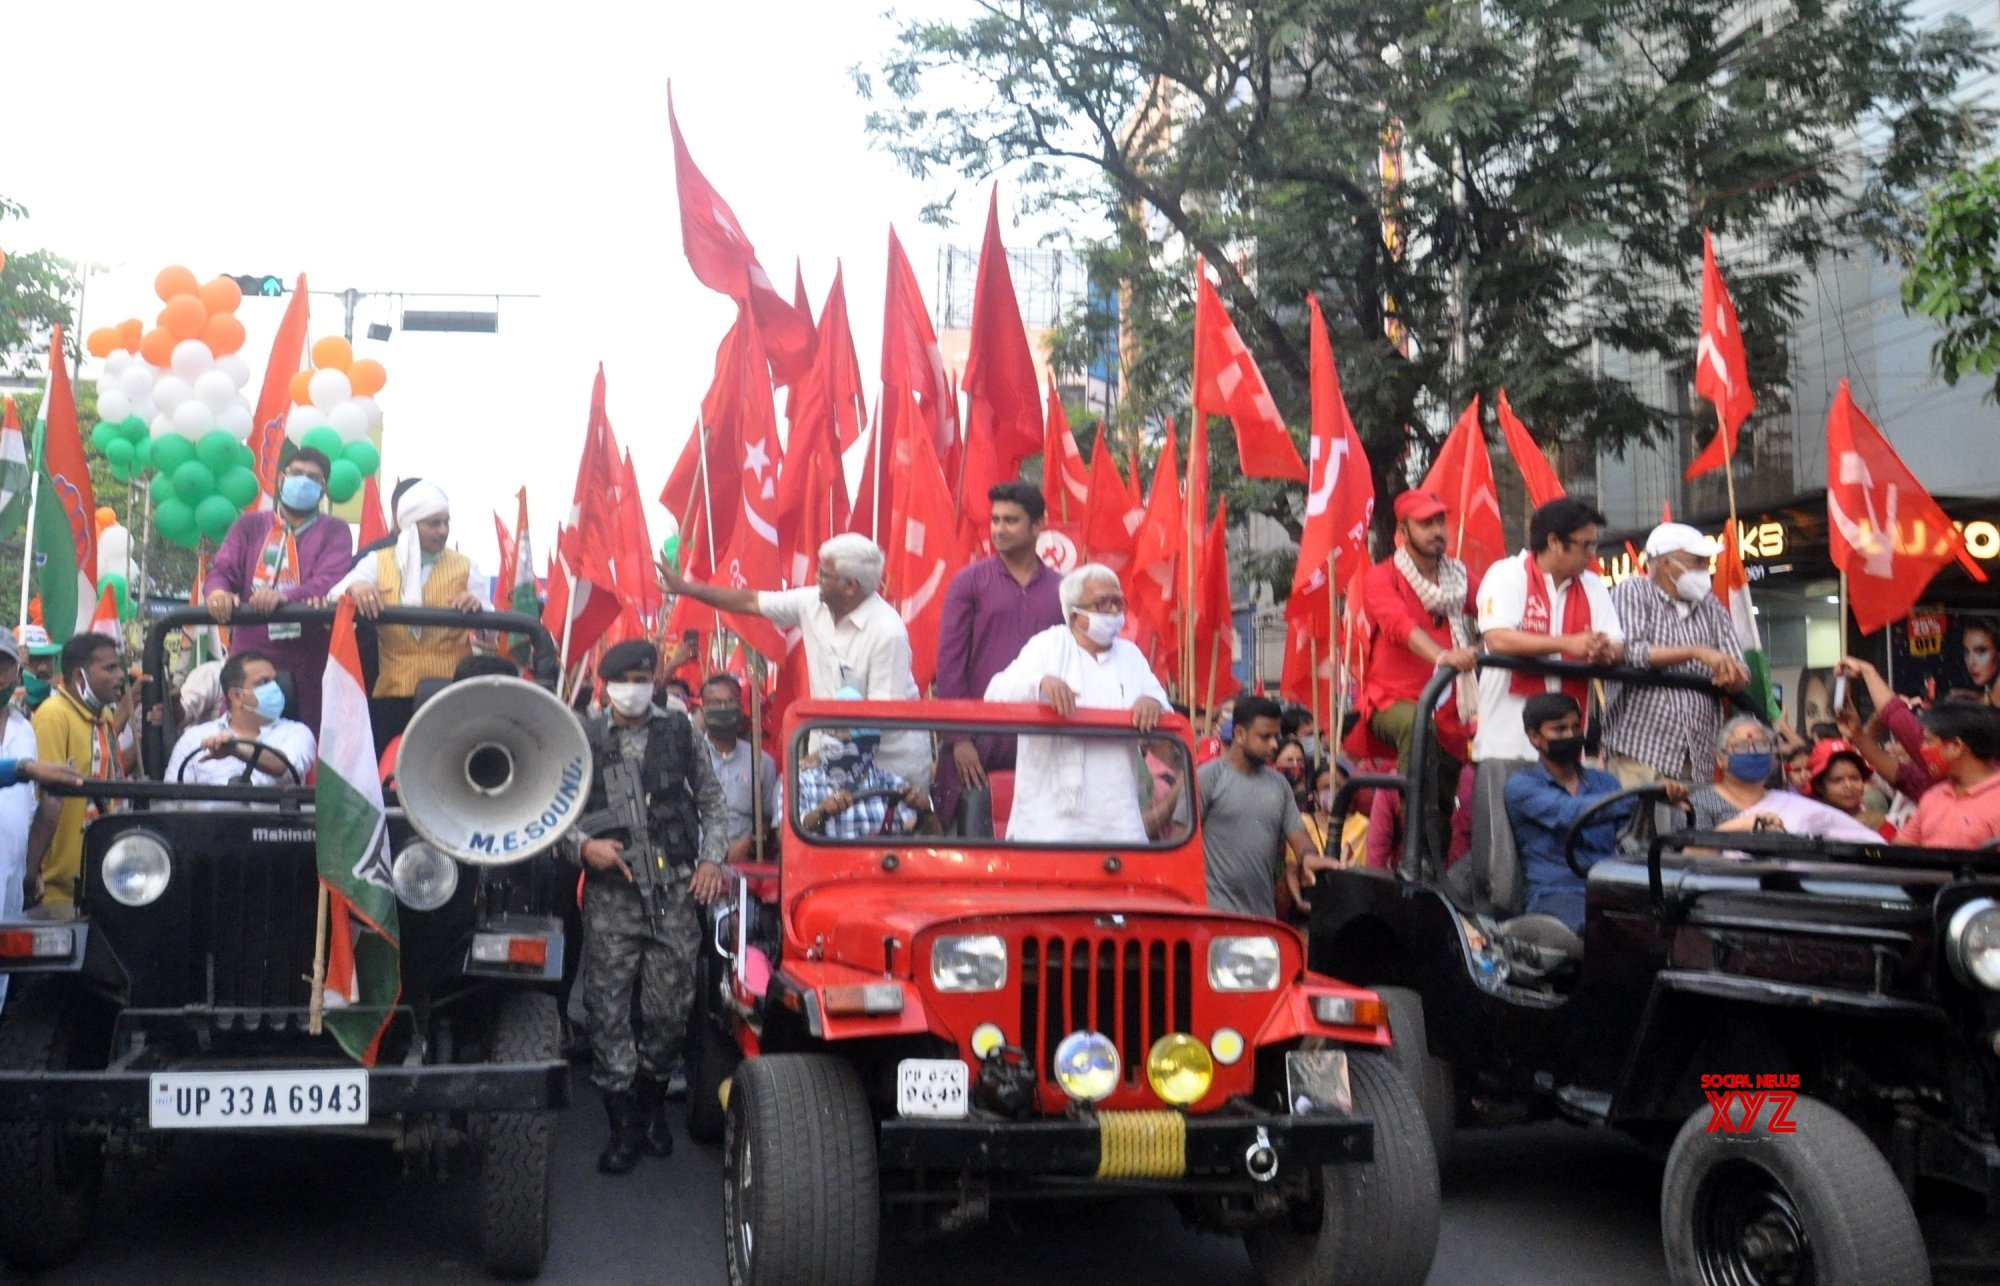 Kolkata : Sanjukta Morcha activists took part in a rally led by Left Front Chairman Biman Basu ahead of the 4th phase of the State Assembly election in Kolkata on April 7, 2021. #Gallery